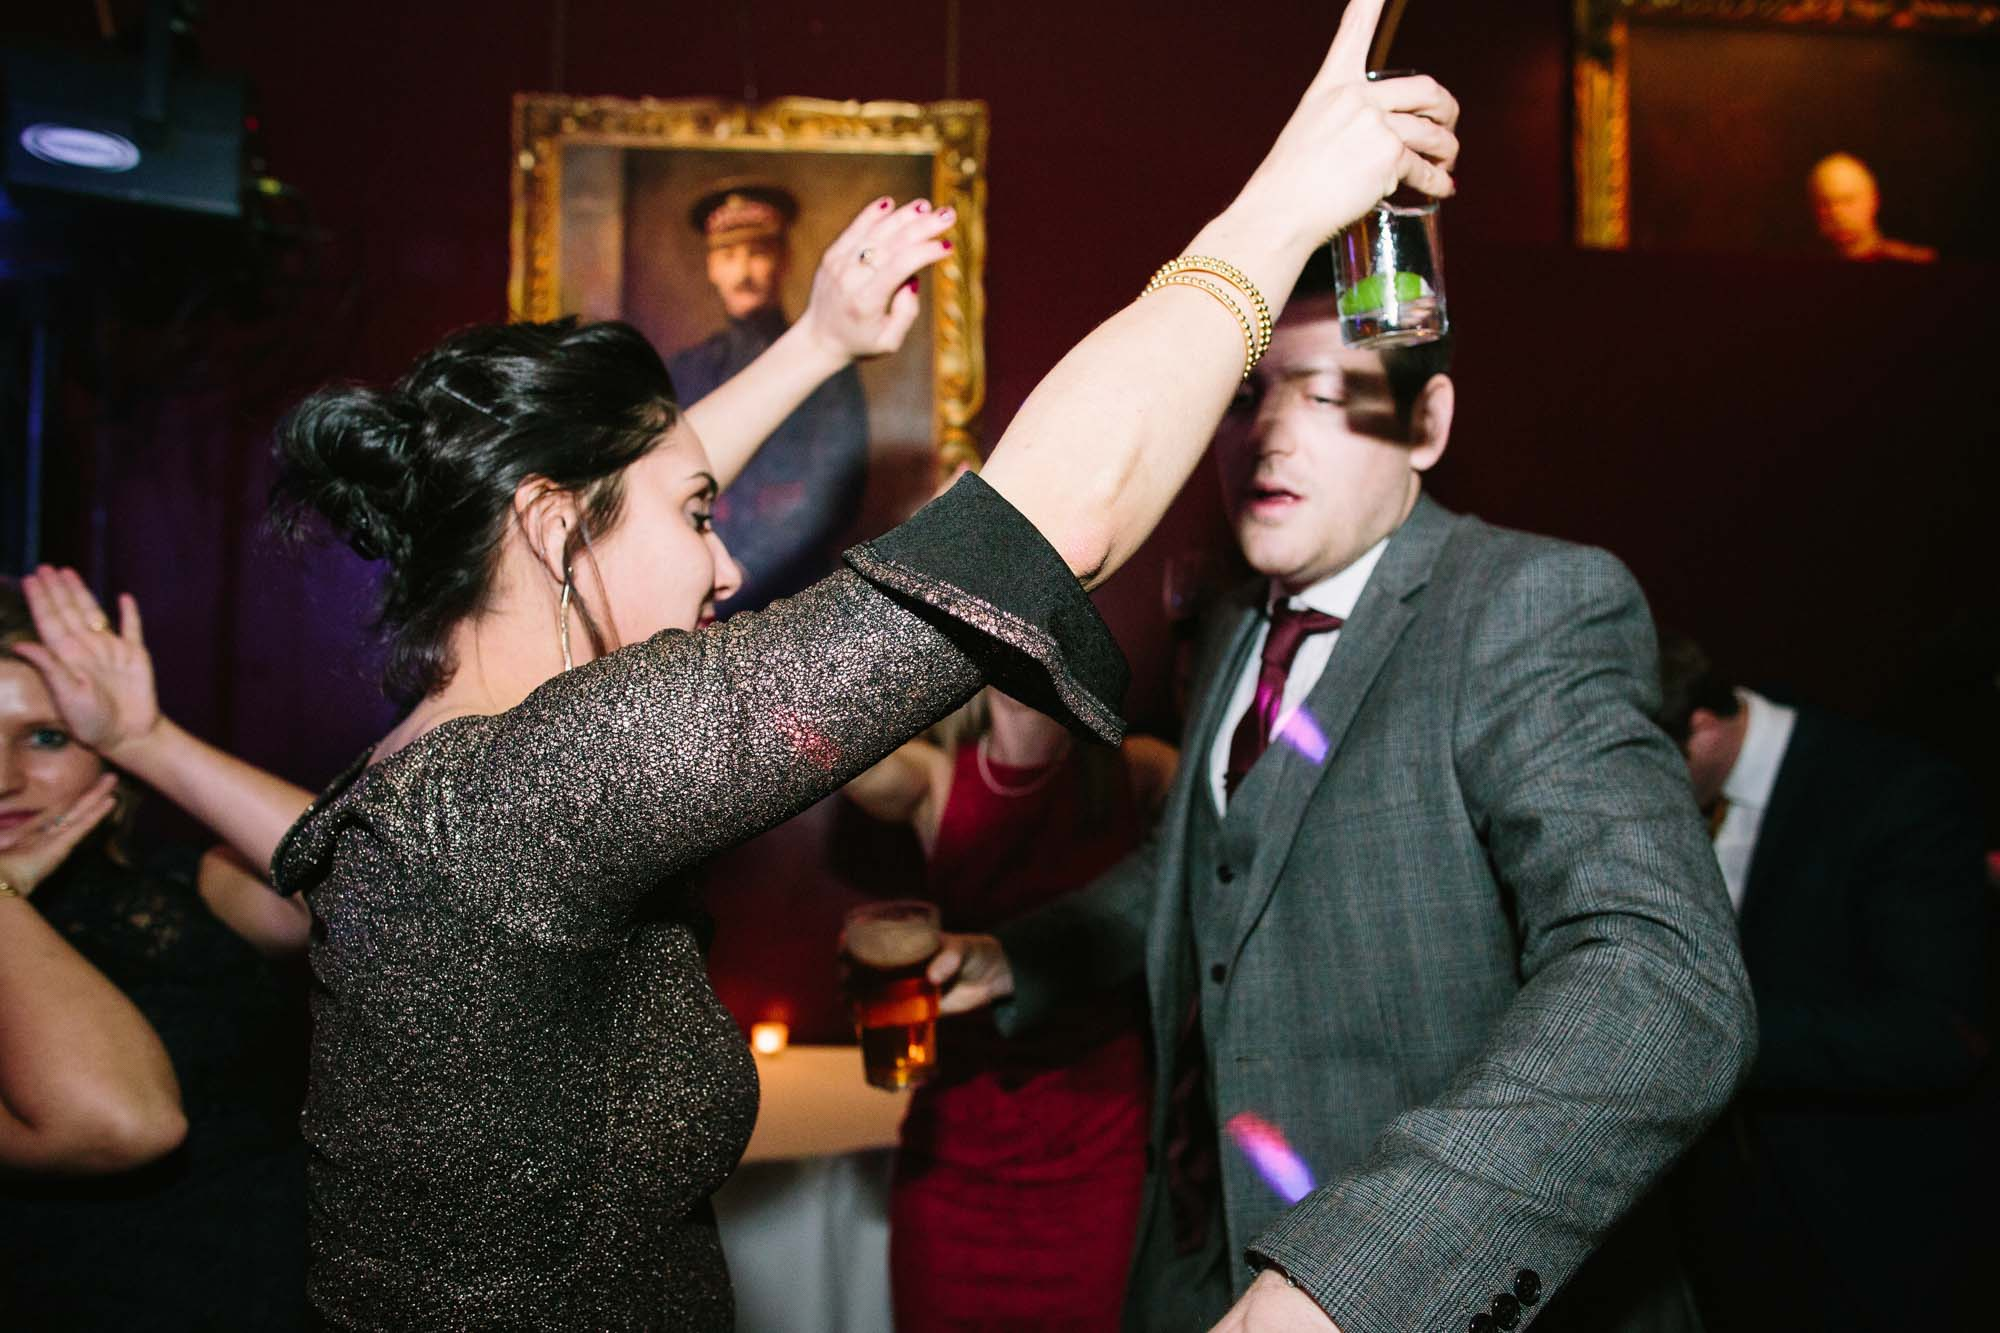 Guests dancing during a wedding at Goodwood House